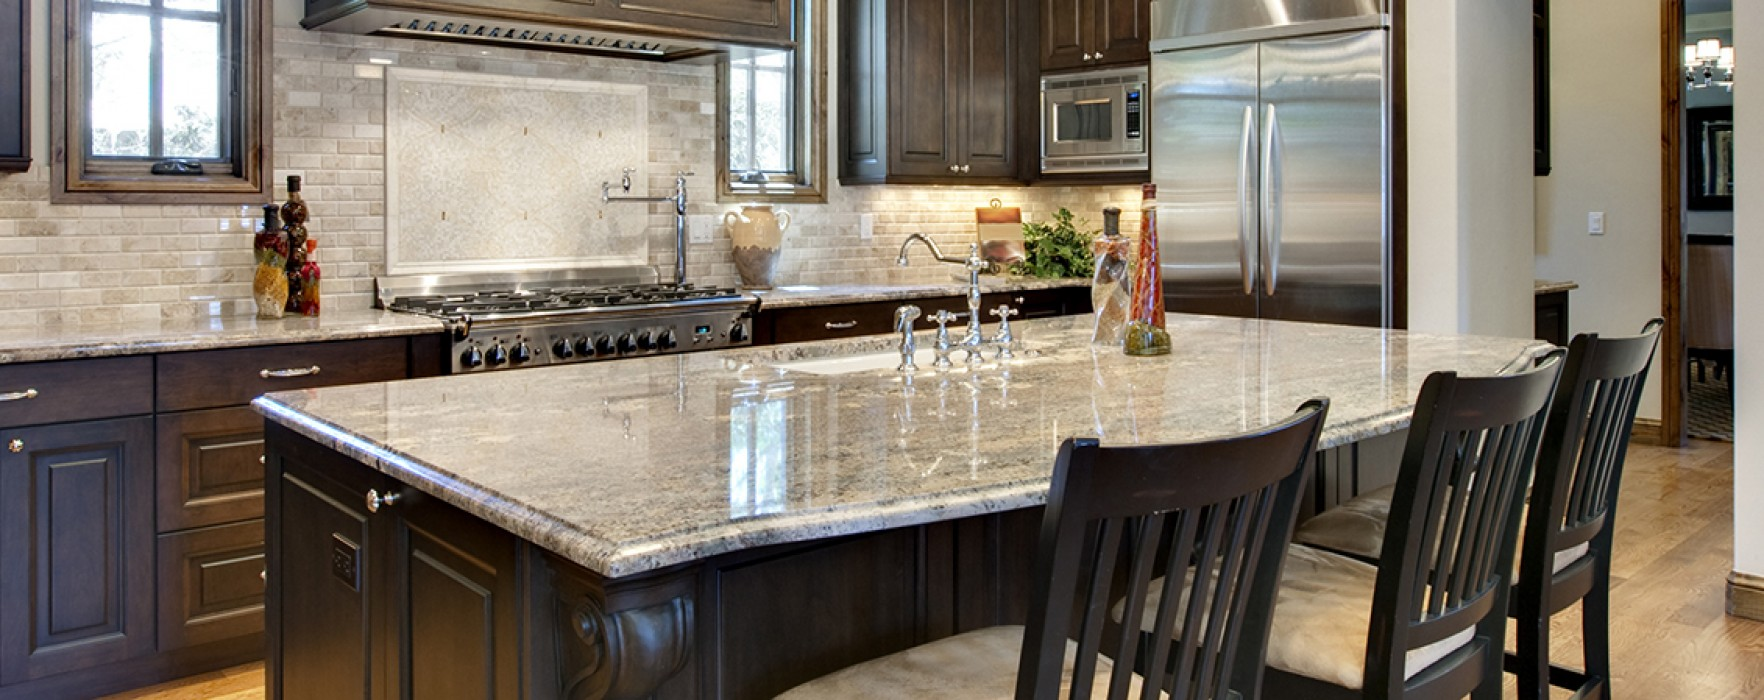 Easy Kitchen Makeover Refinished Countertops Better Homes and